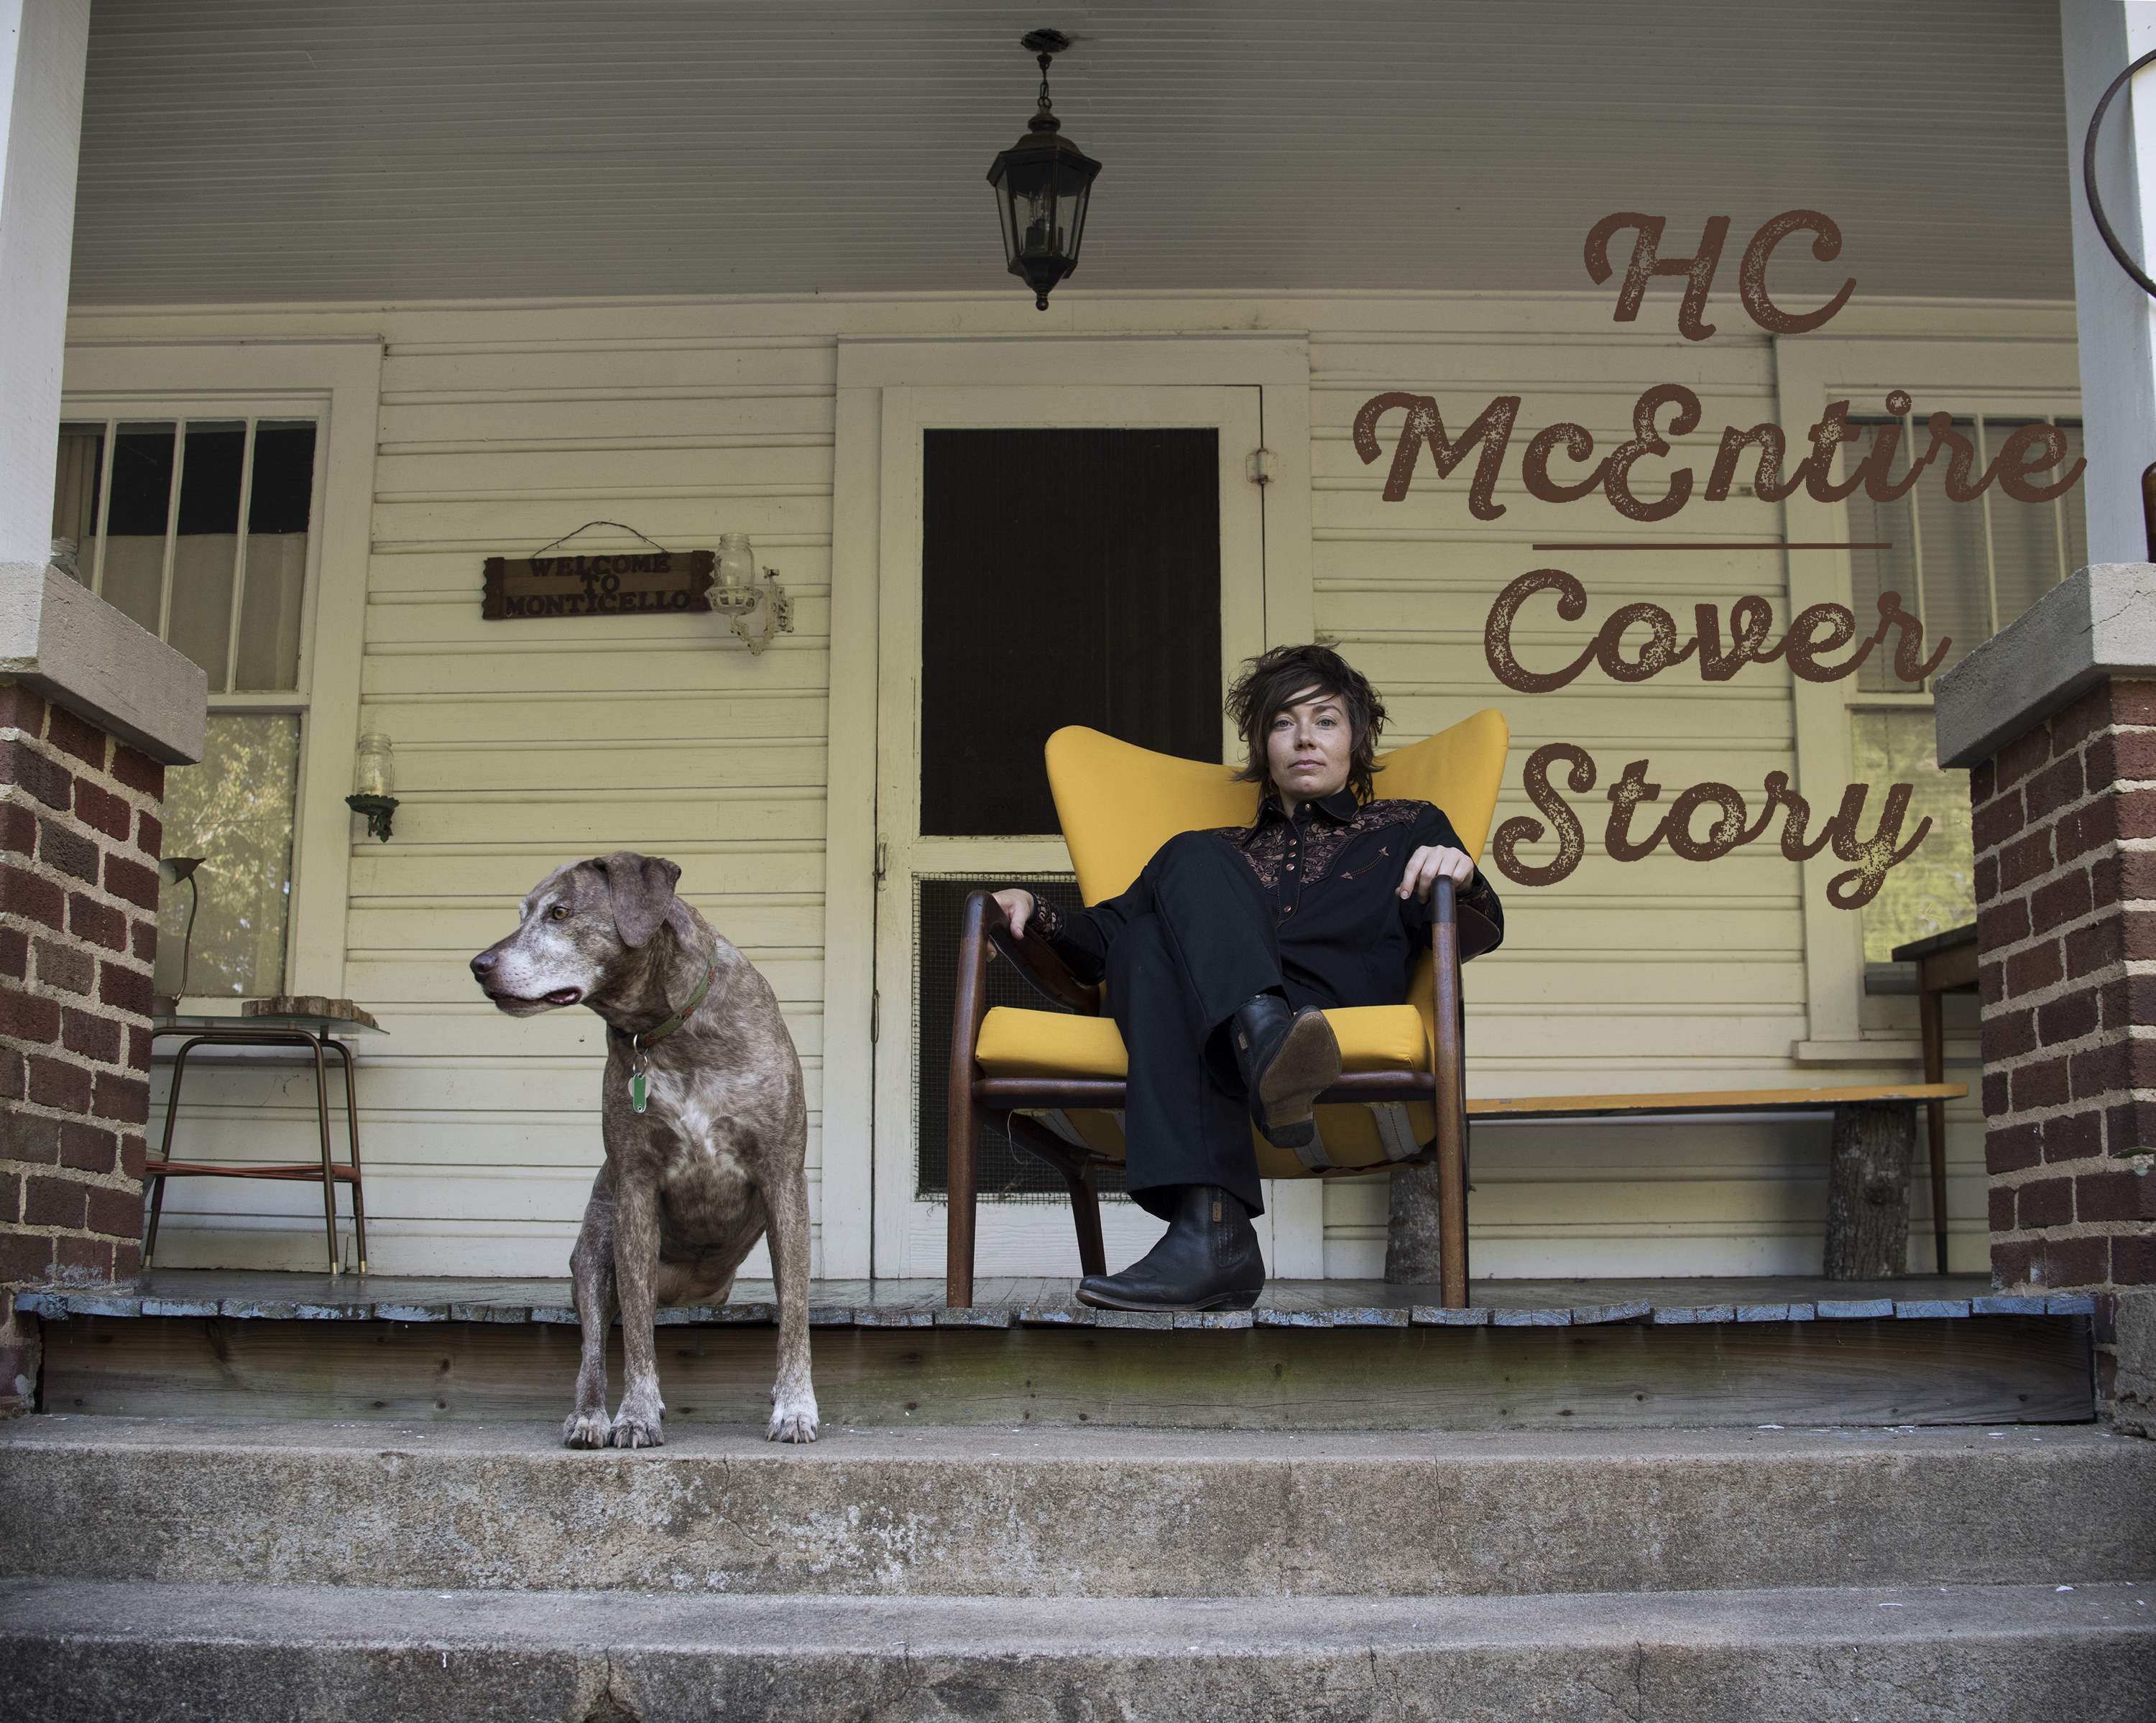 Being Your Own Gravel Road: A Conversation with H.C. McEntire